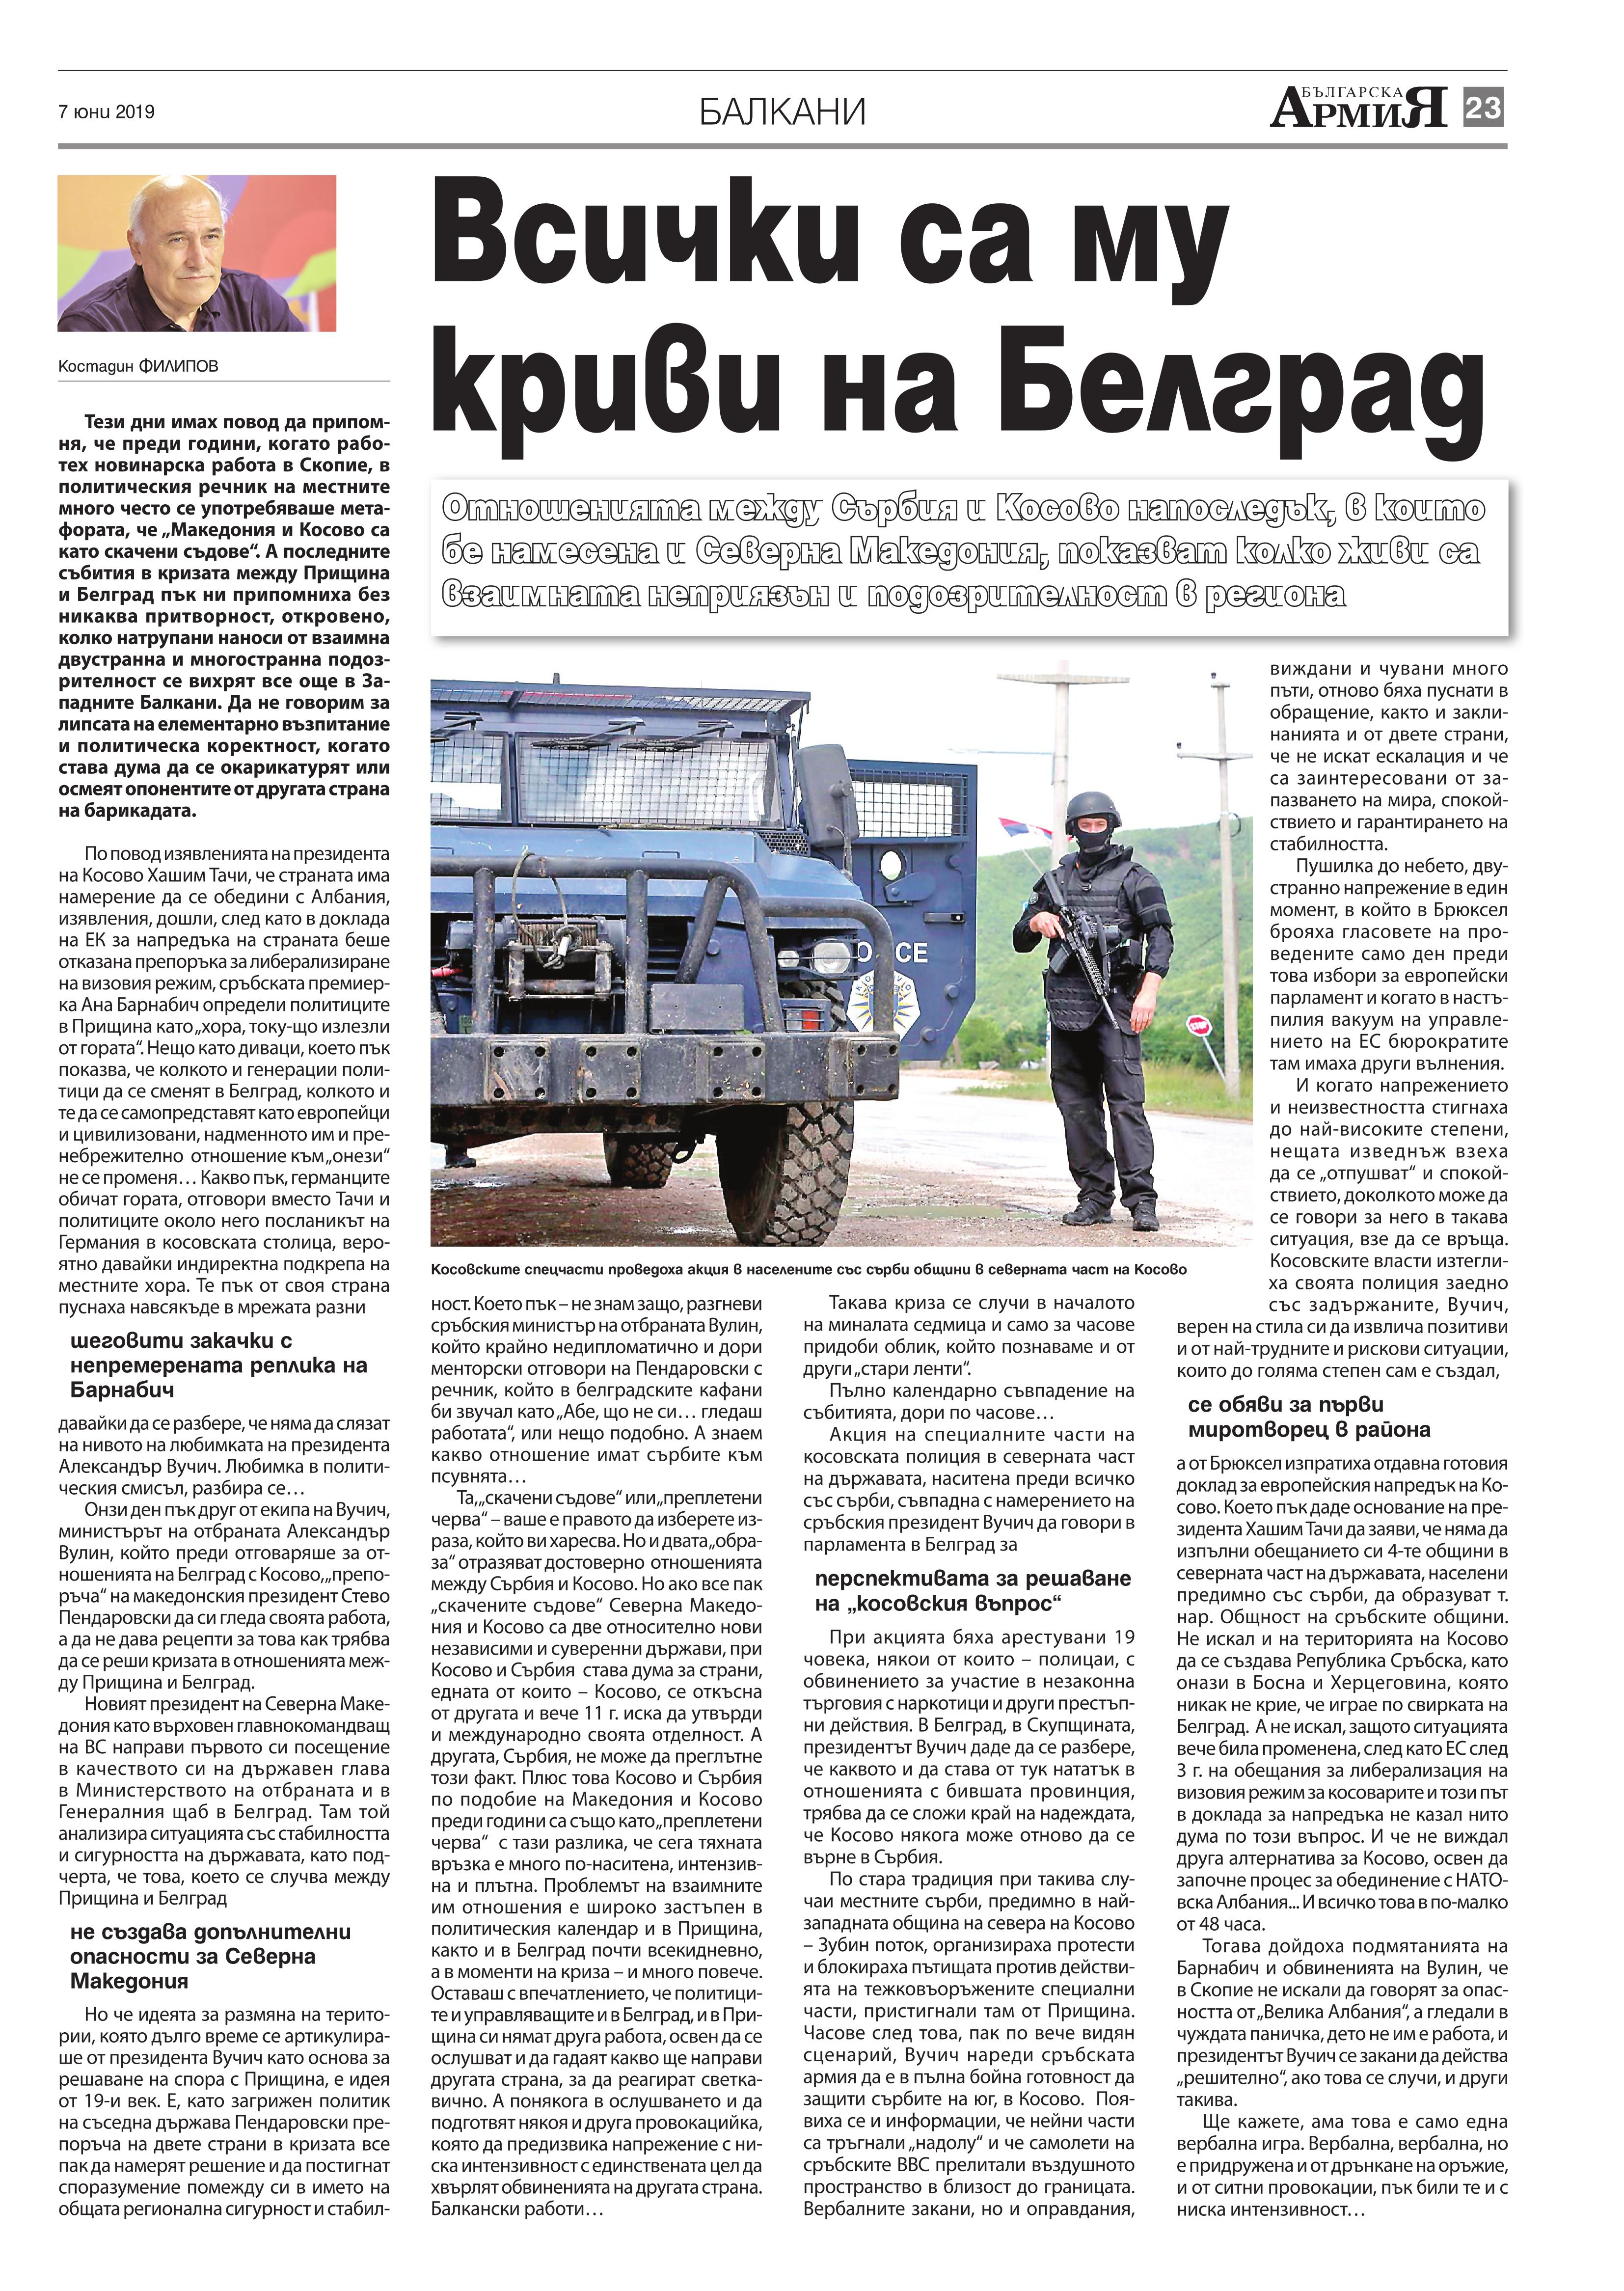 https://www.armymedia.bg/wp-content/uploads/2015/06/23.page1_-98.jpg